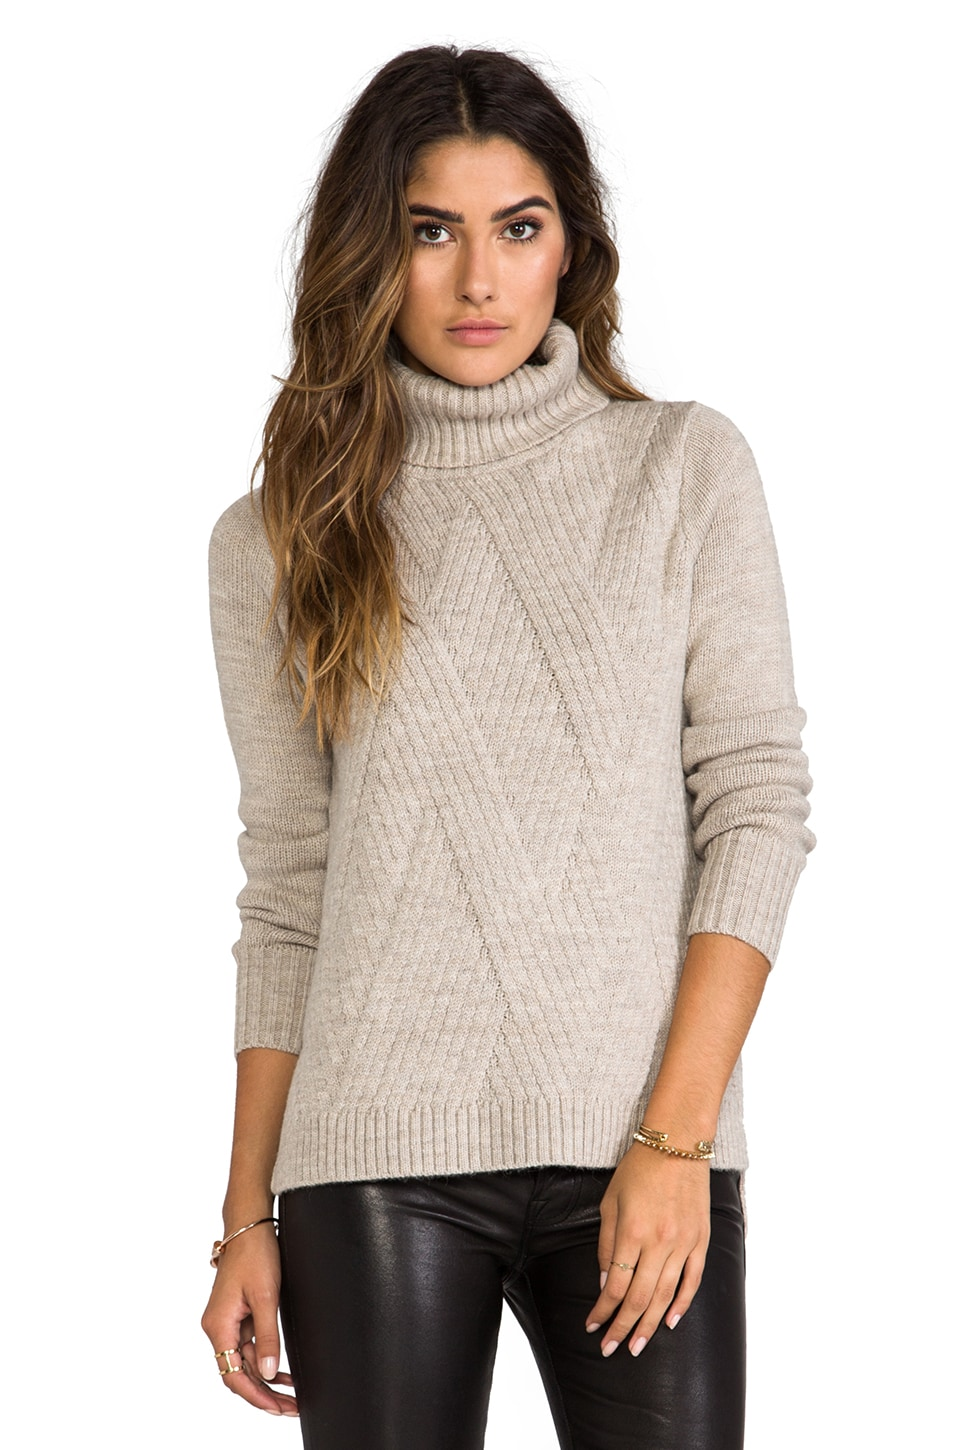 Vince Travelling Rib Turtleneck in Almondine